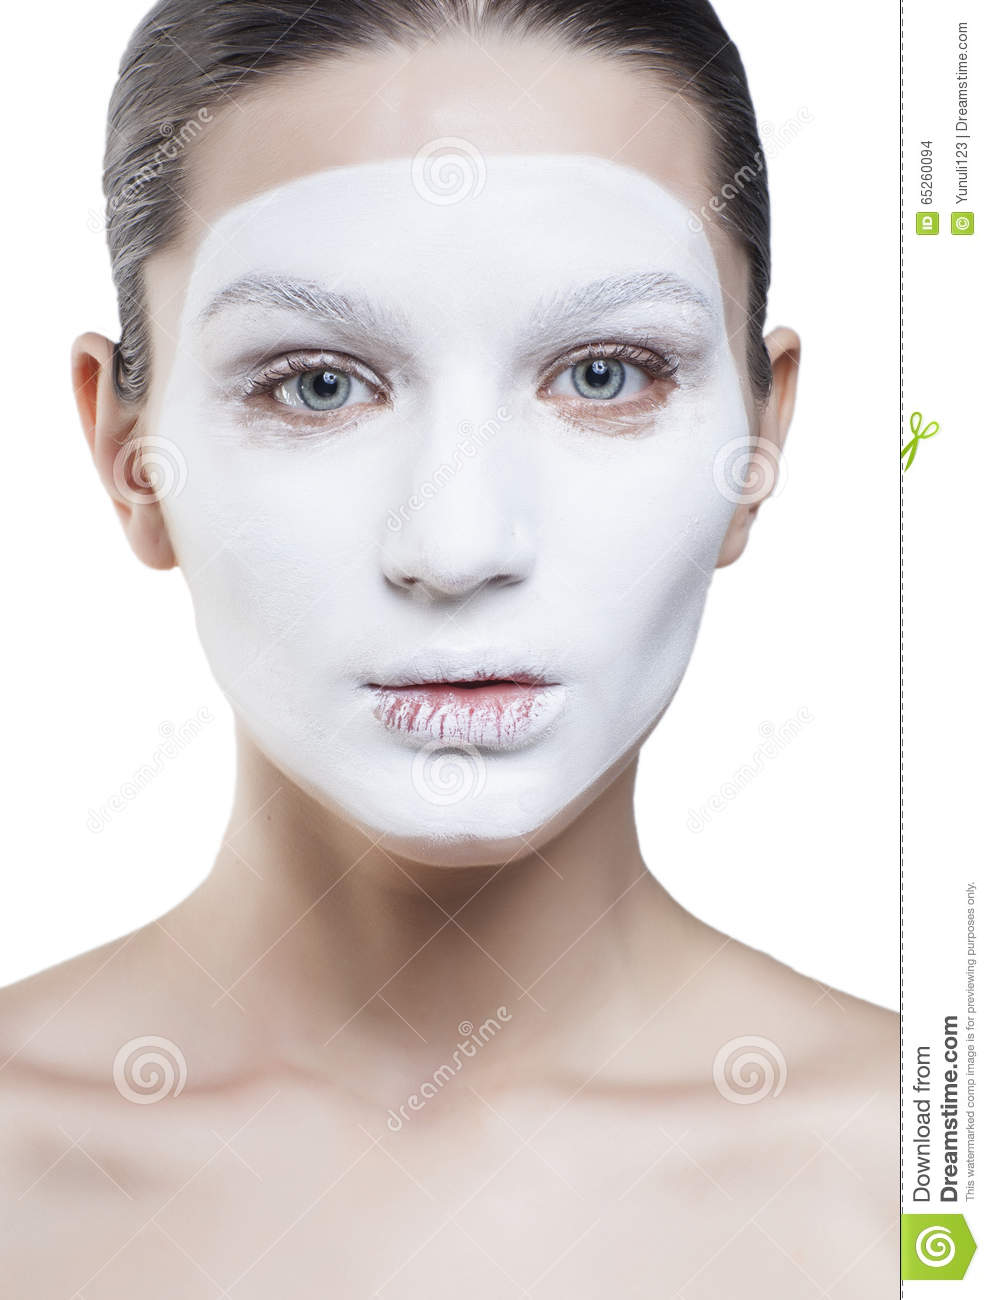 Where To Buy Mime Face Paint